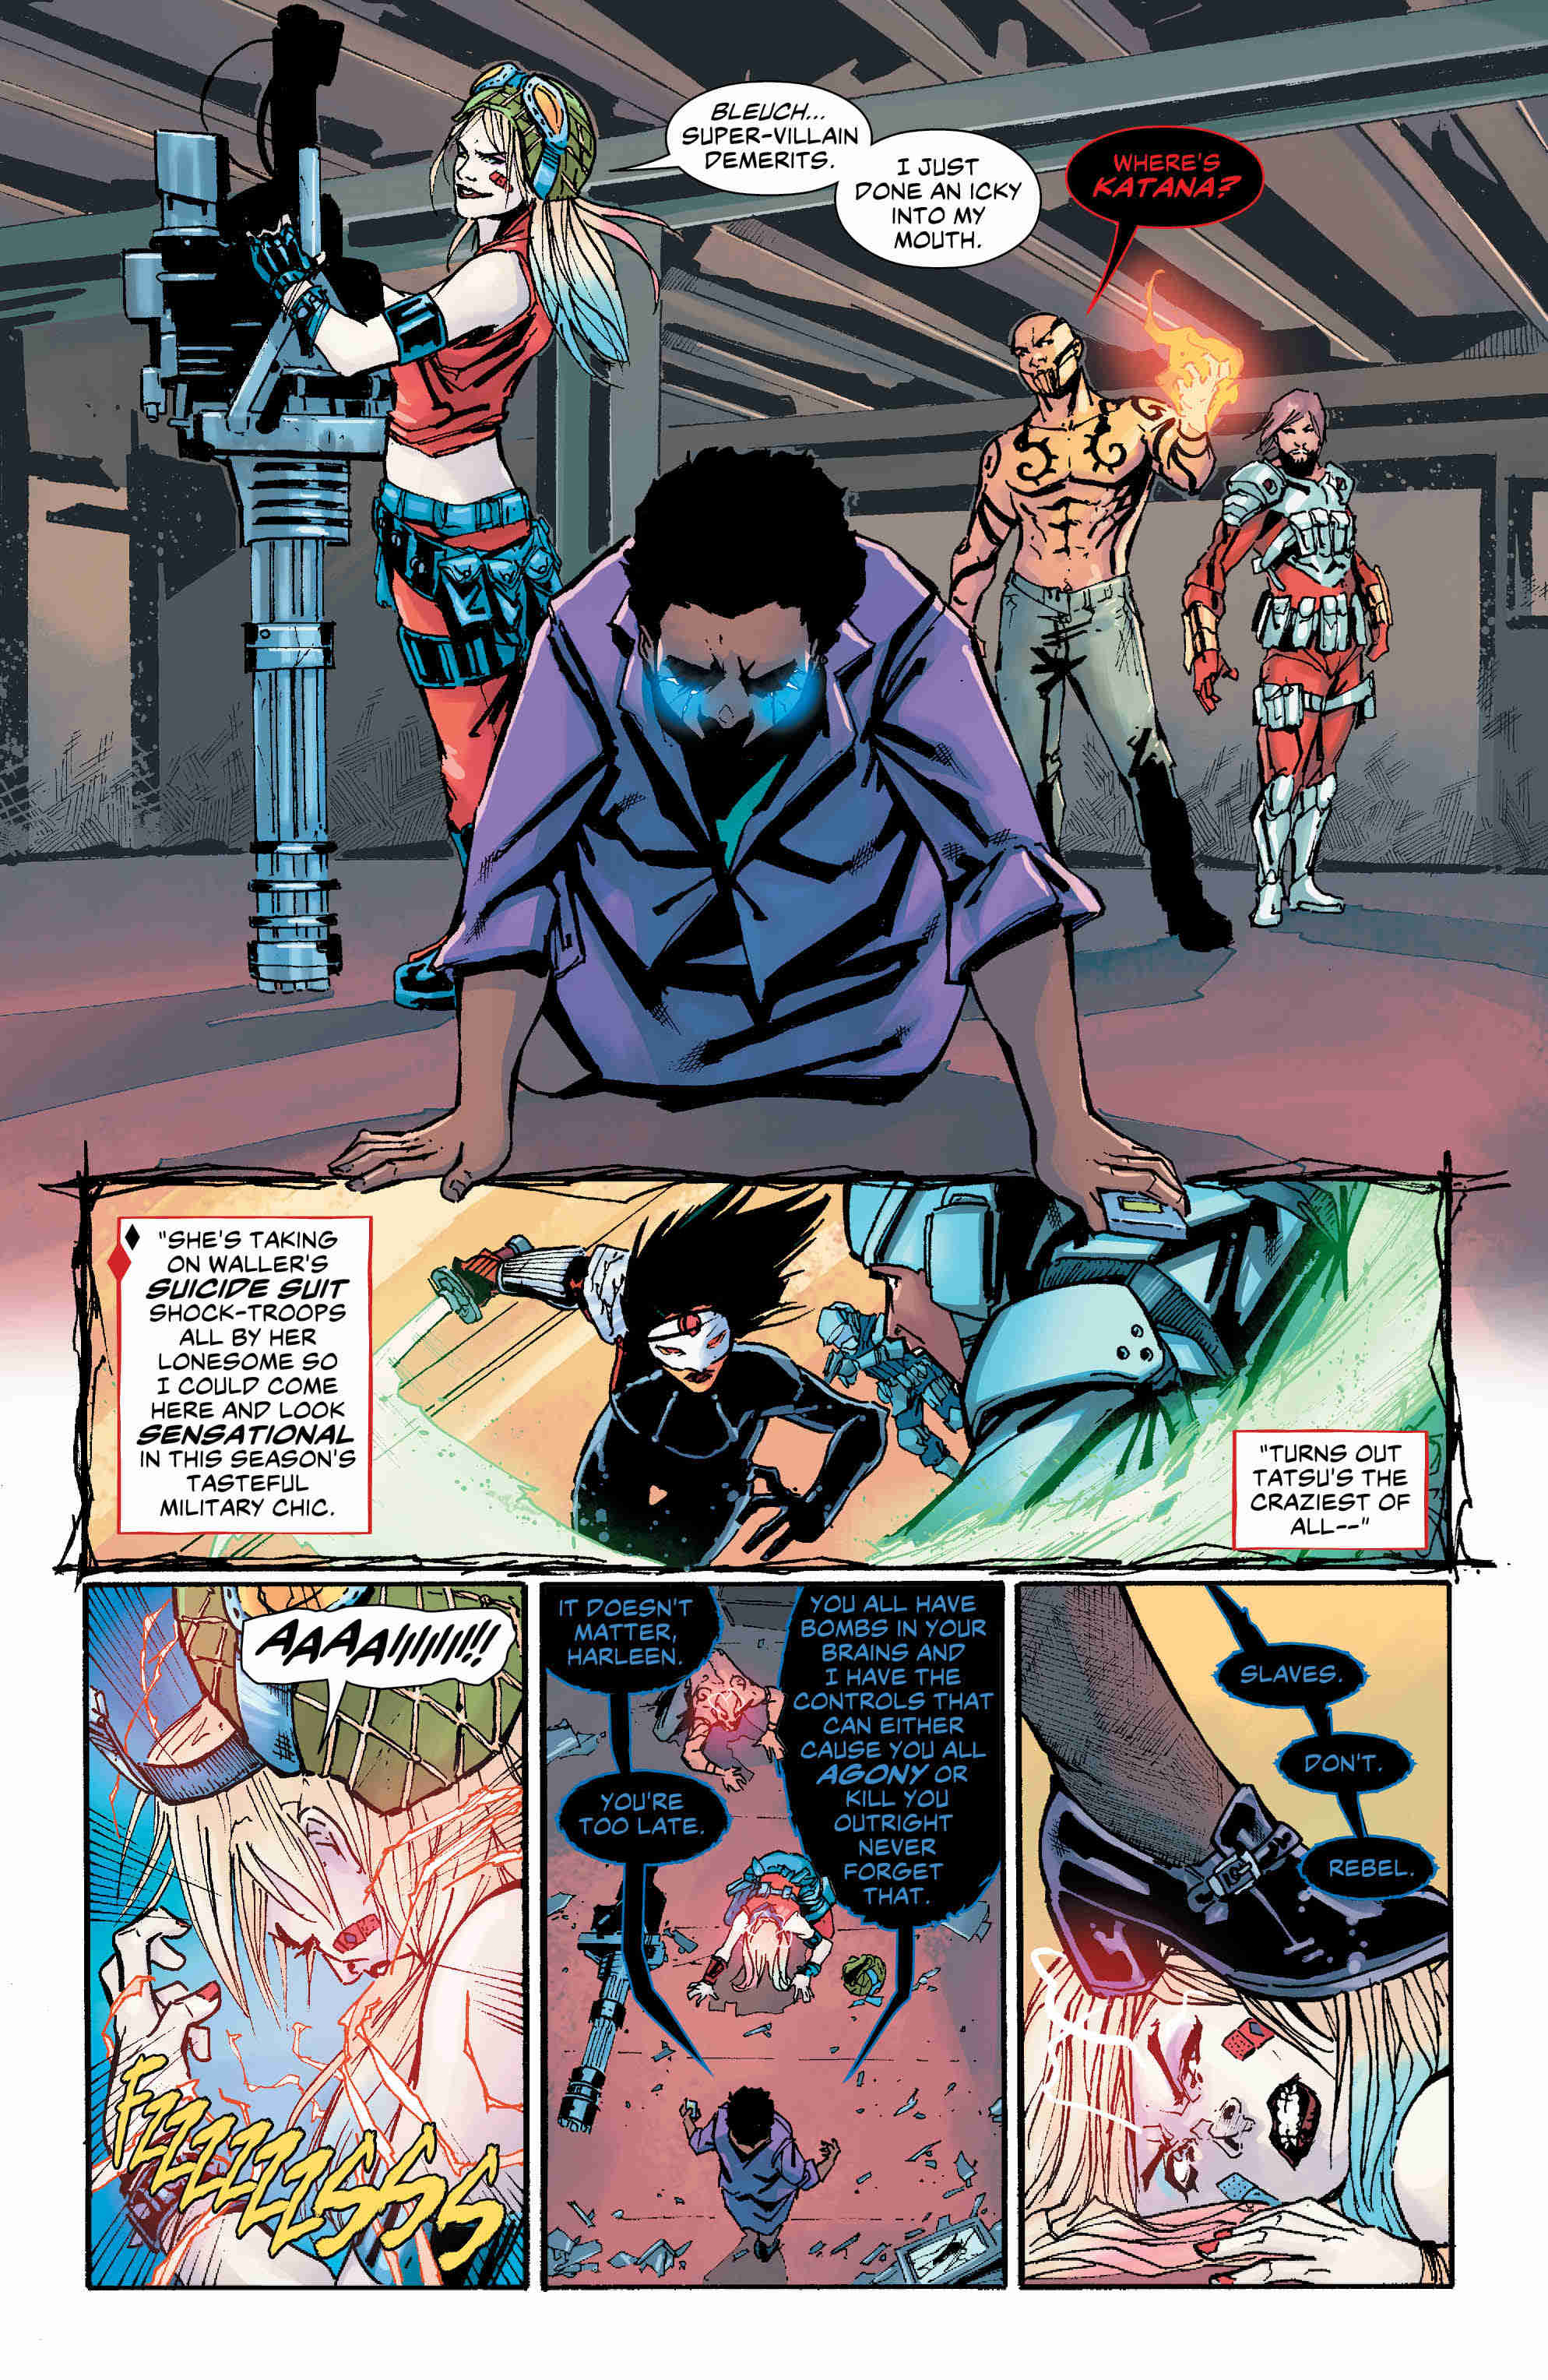 Exclusive Preview: Kill Your Darlings Concludes In Suicide Squad #25